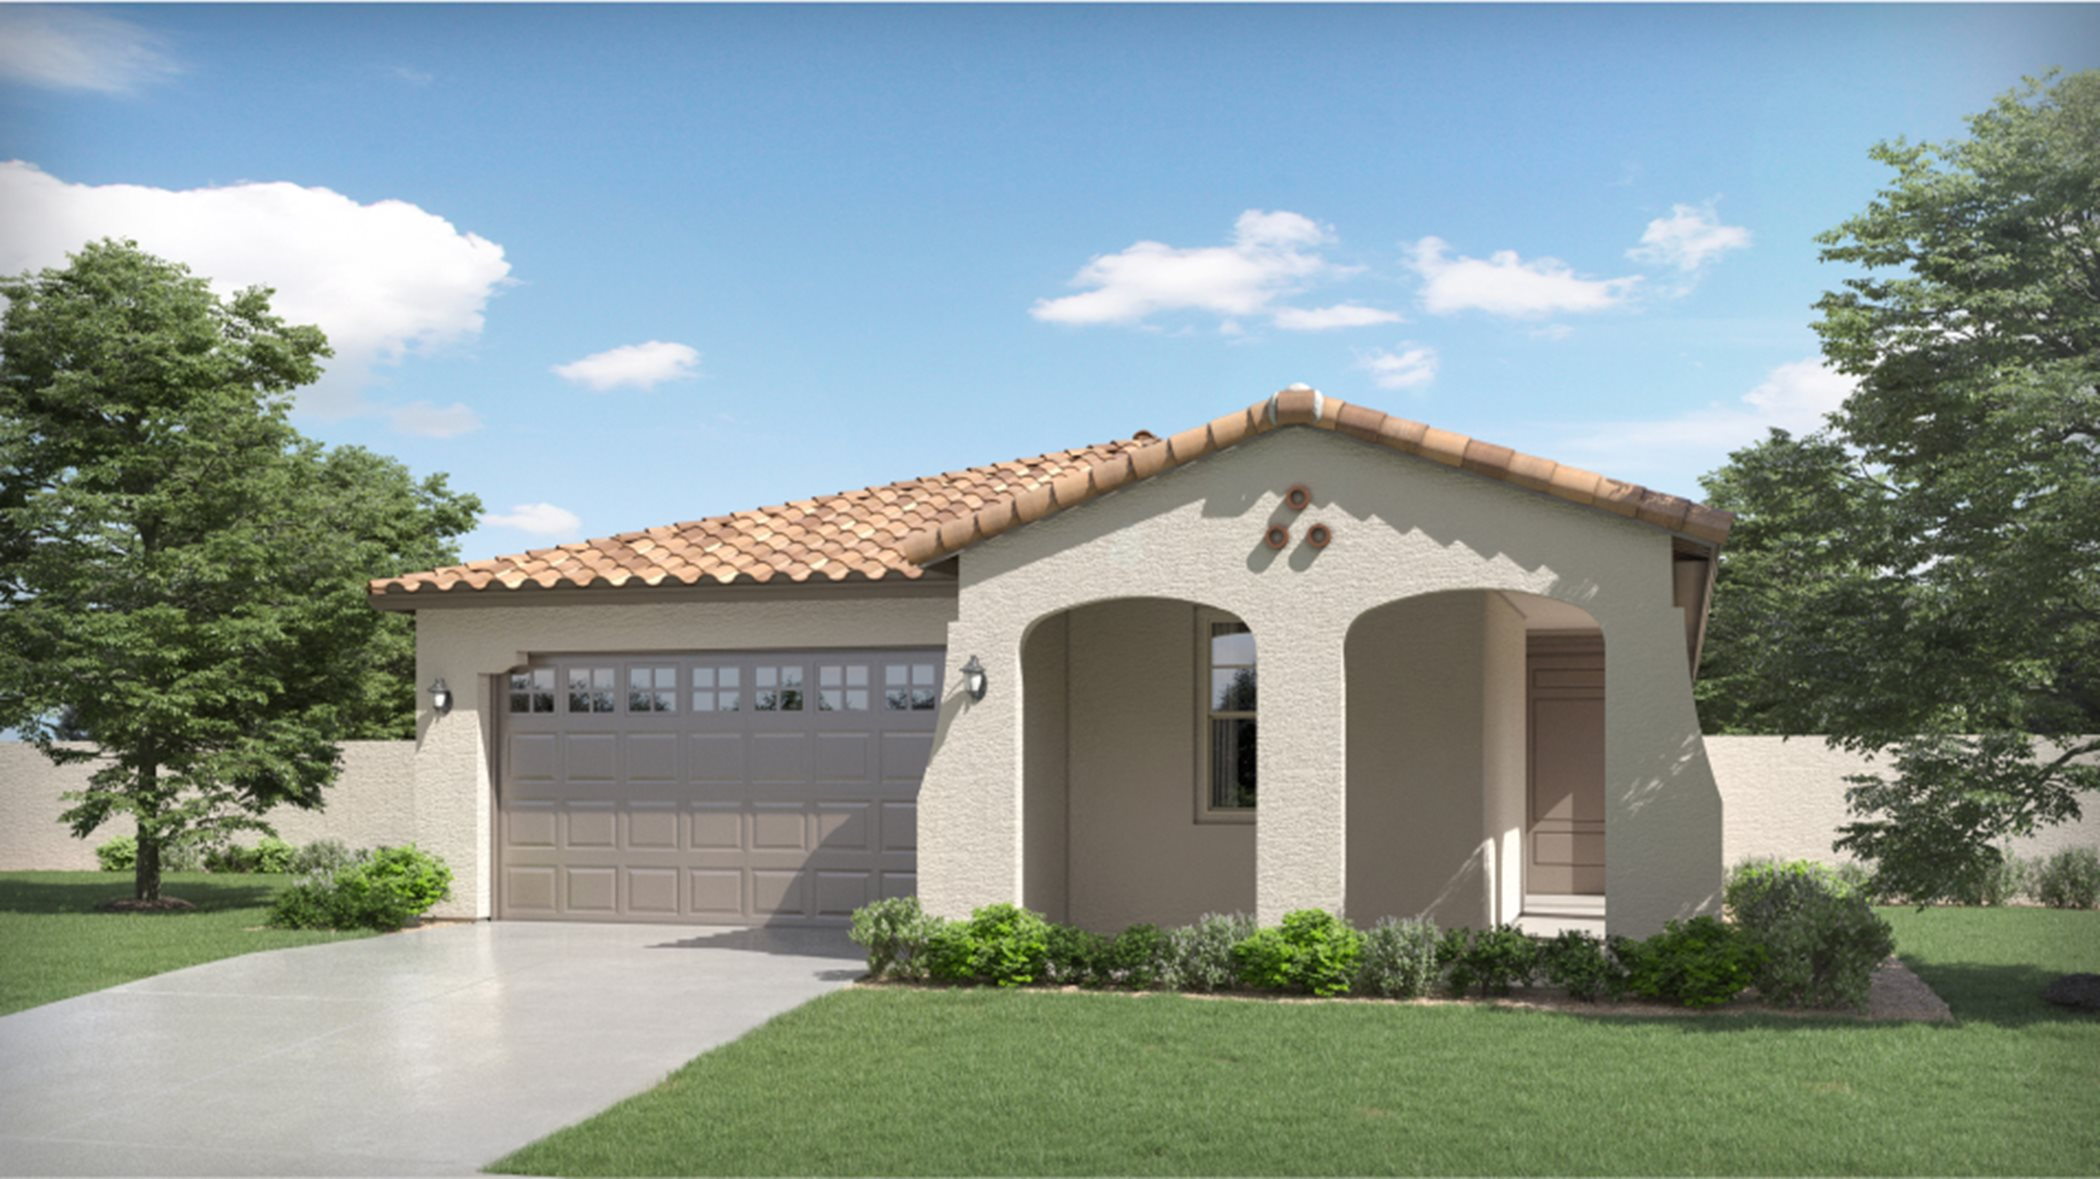 Spanish Colonial Exterior for Plan 3519